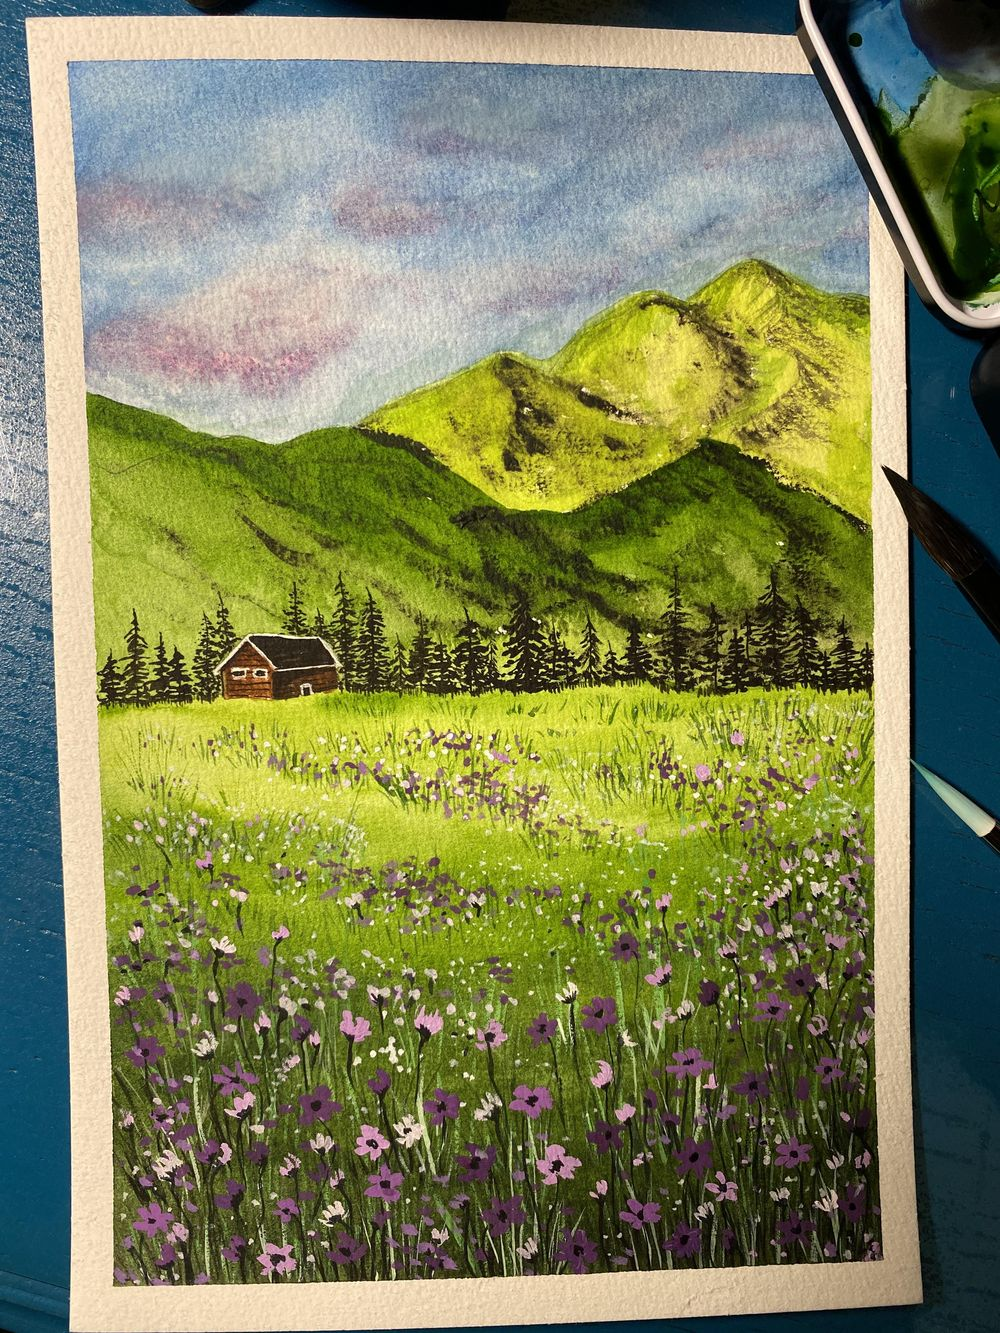 My Flower Meadow - image 1 - student project